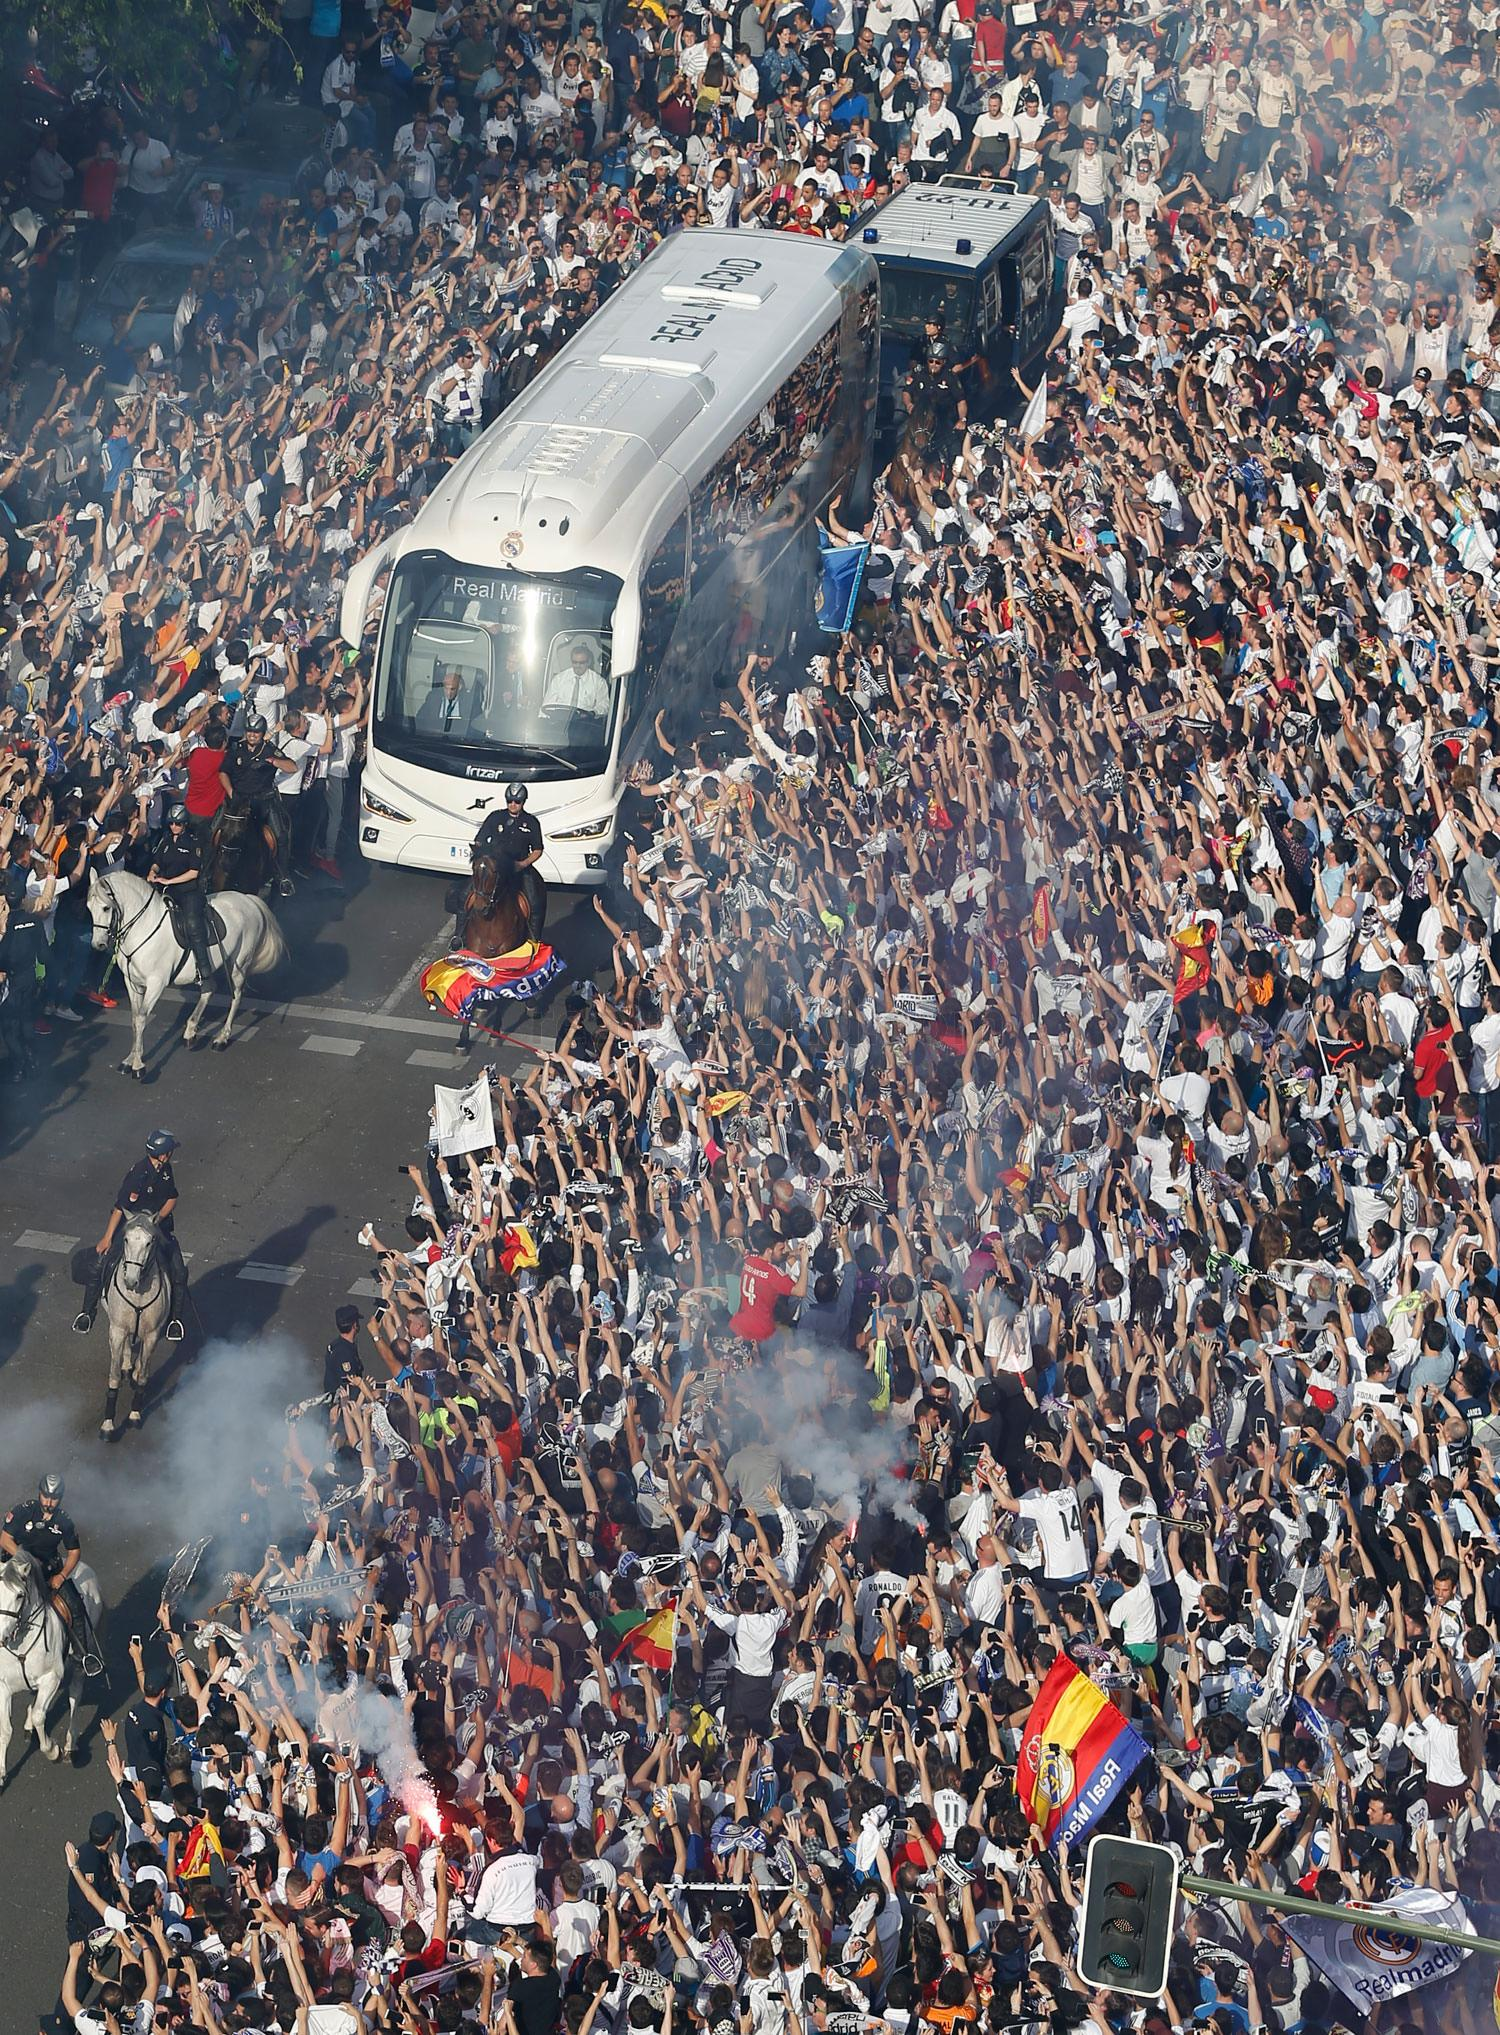 Real Madrid - Llegada del Real Madrid al estadio Santiago Bernabéu - 04-05-2016